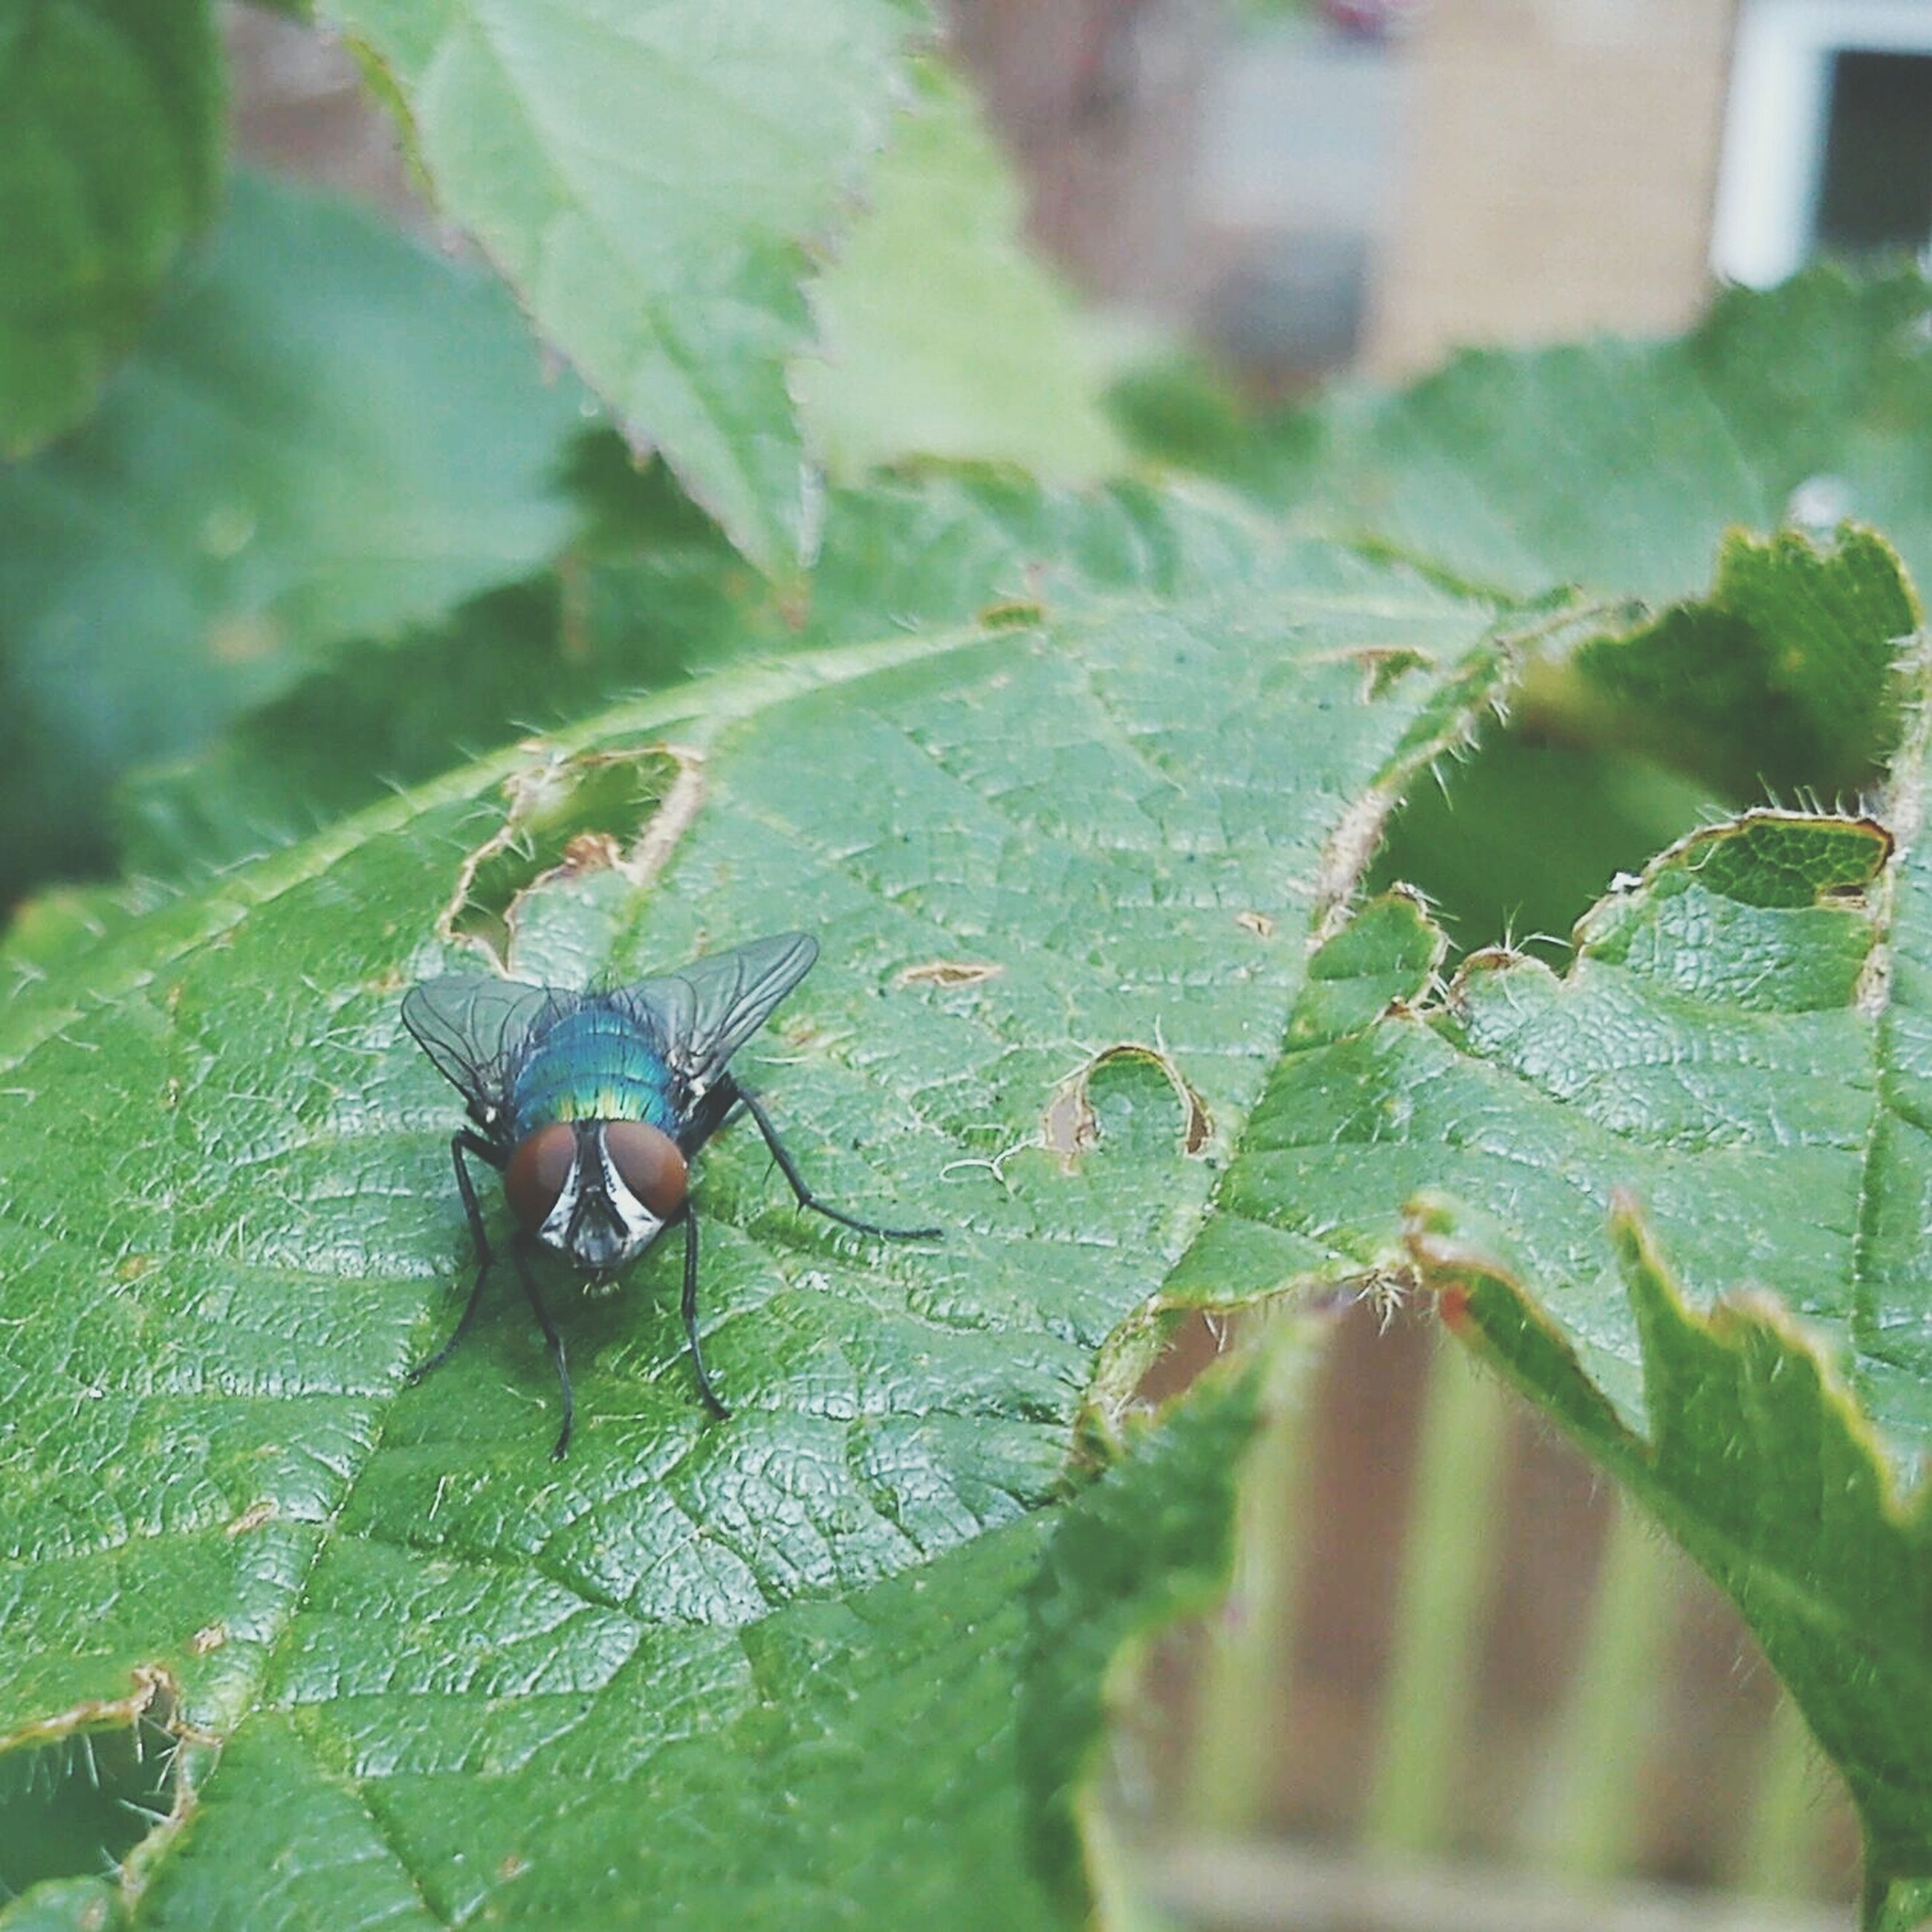 insect, animals in the wild, animal themes, one animal, leaf, wildlife, green color, close-up, focus on foreground, selective focus, nature, plant, leaf vein, day, outdoors, no people, water, high angle view, drop, wet